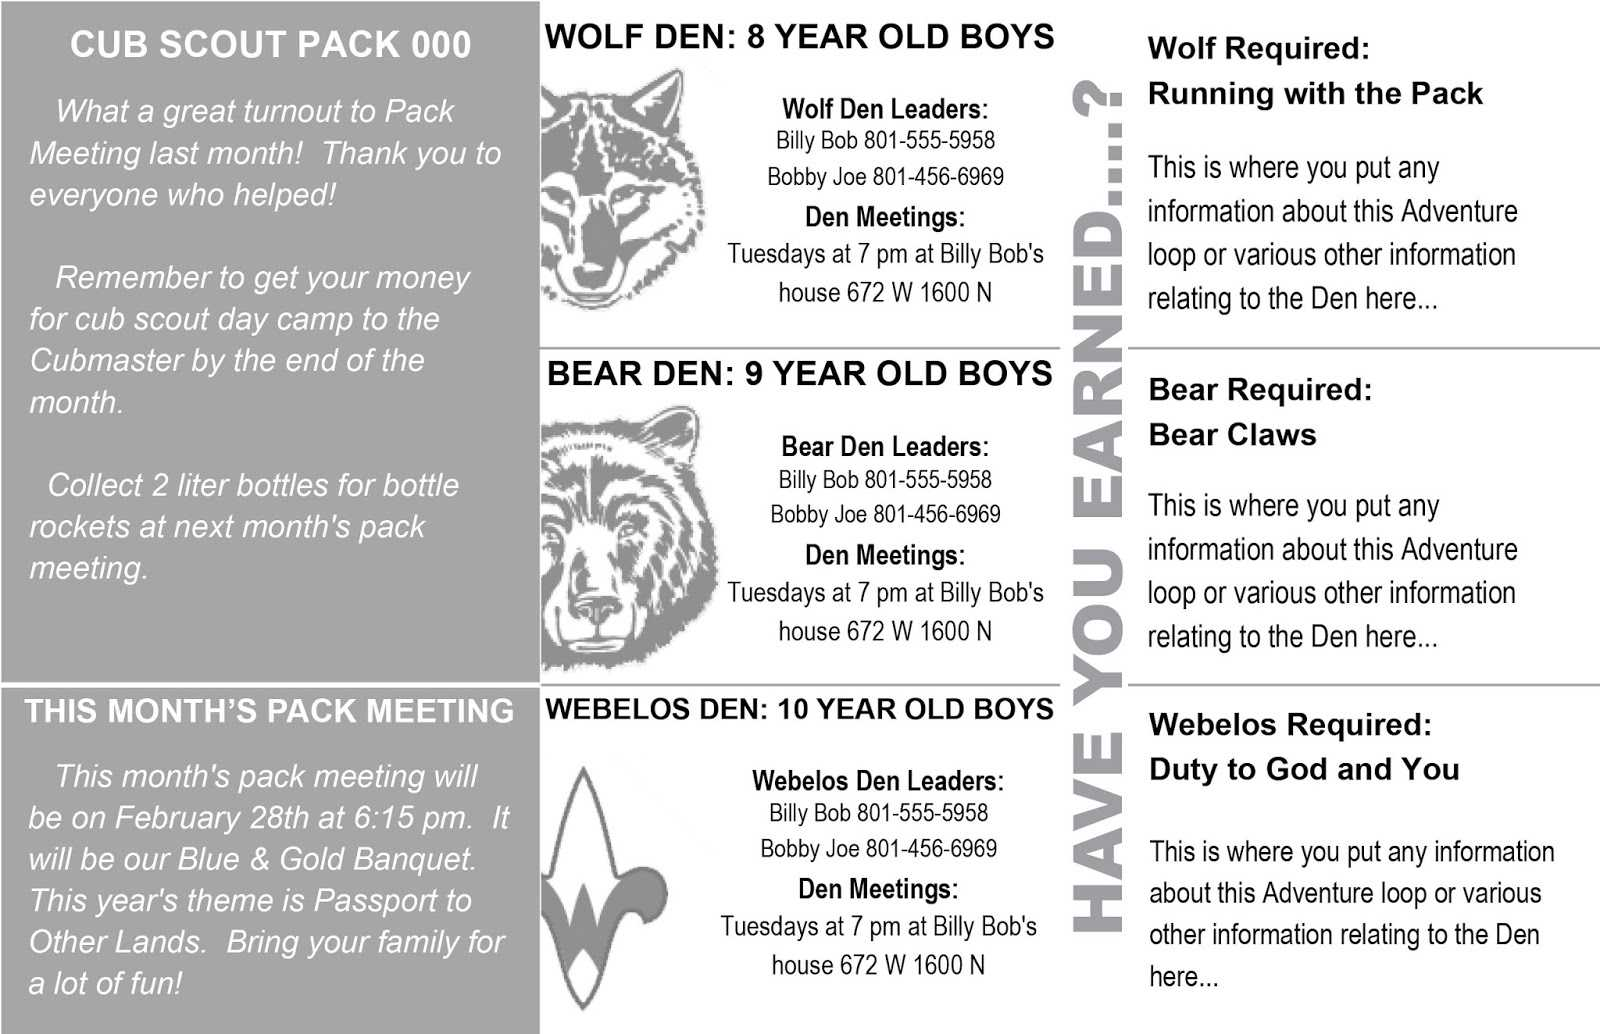 Akela's Council Cub Scout Leader Training: Cub Scout With Regard To Cub Scout Newsletter Template